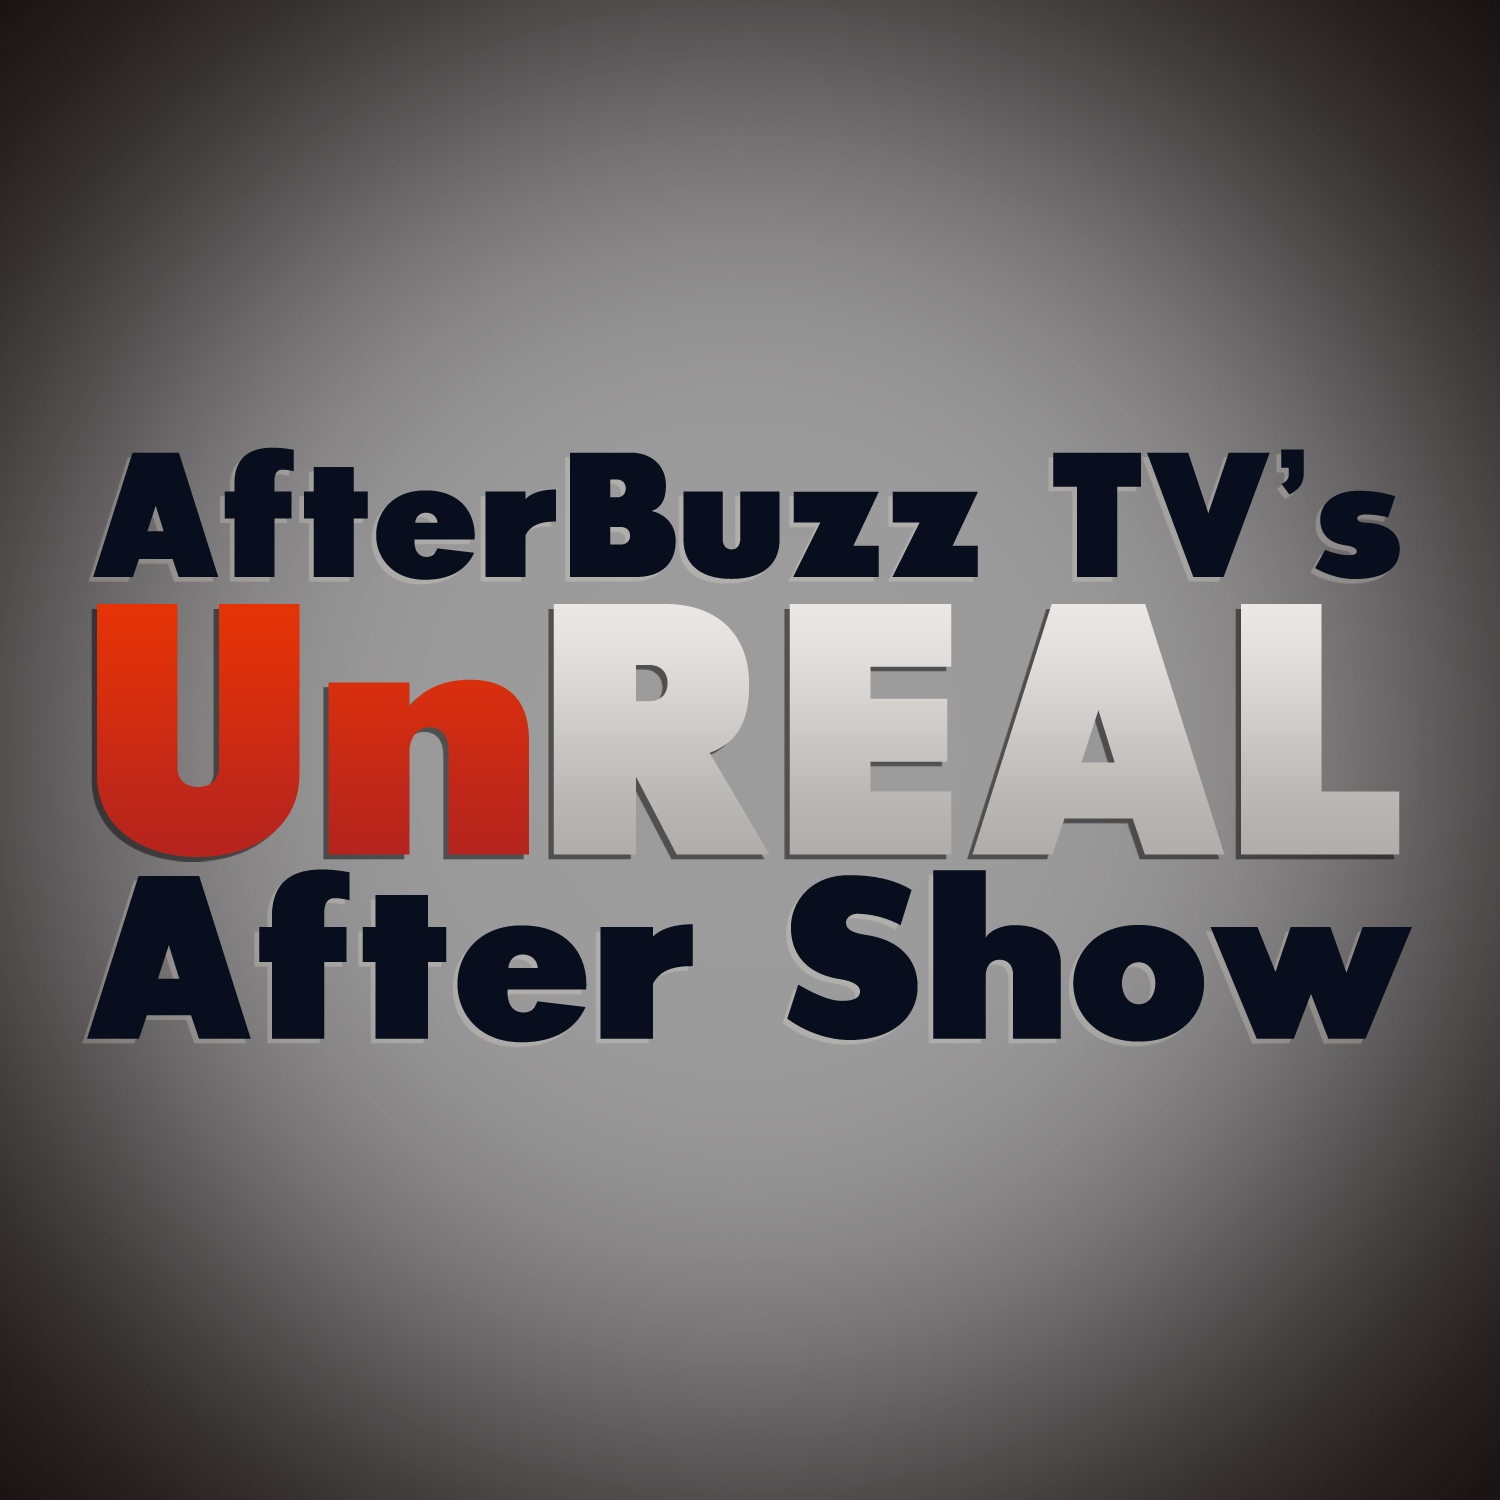 UnReal After Show